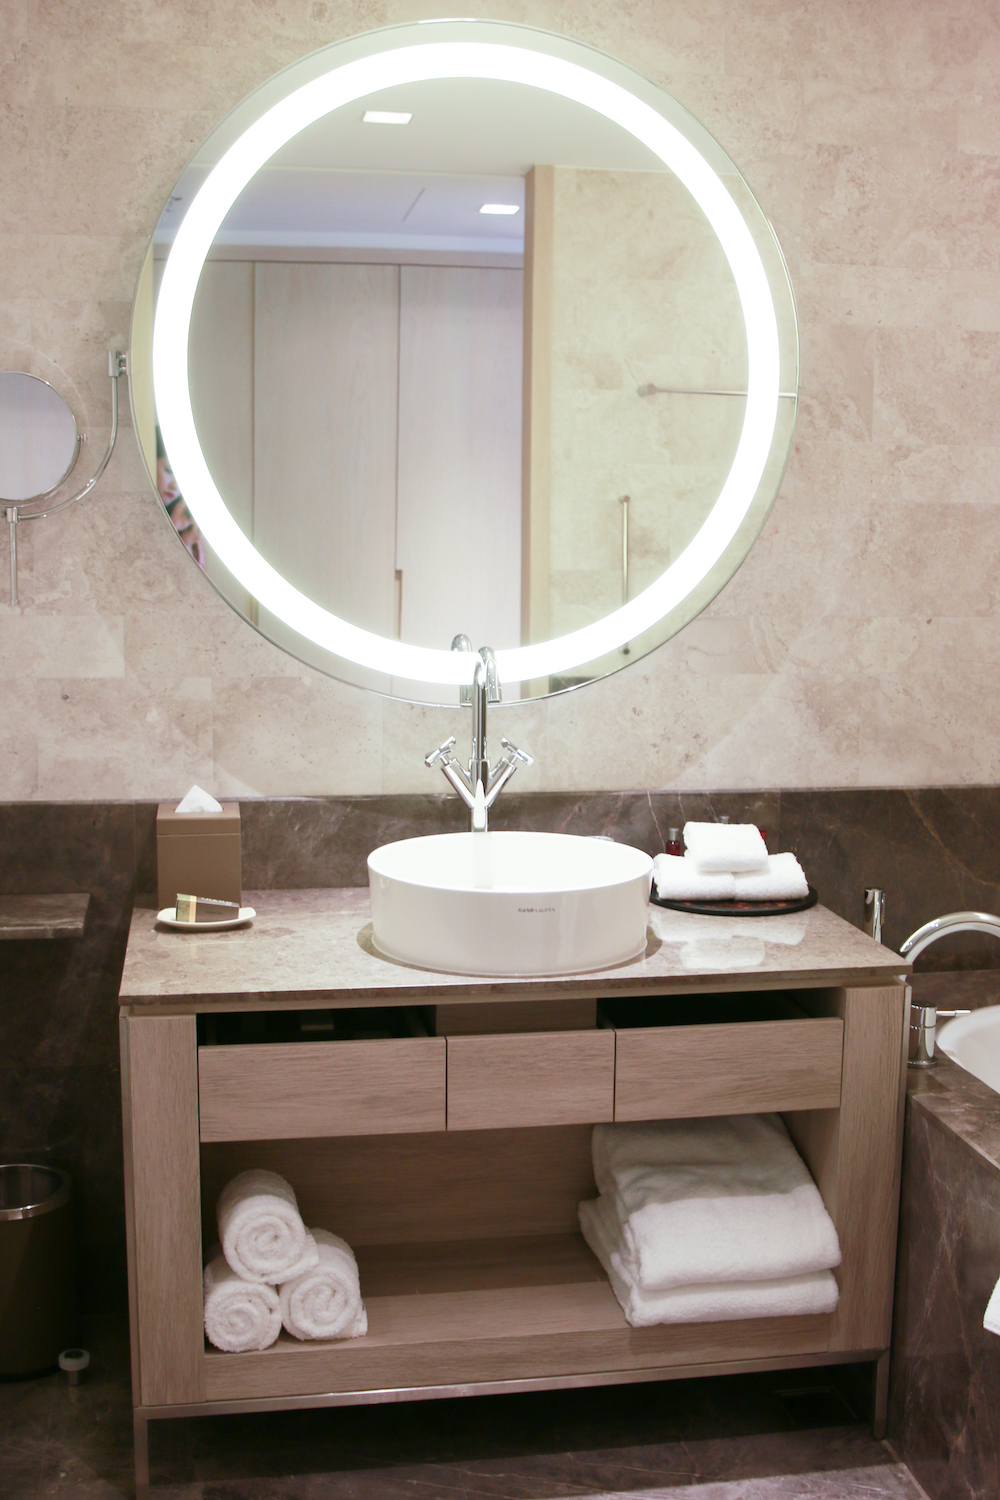 taipei-marriott-hotel-bathroom-review-interior